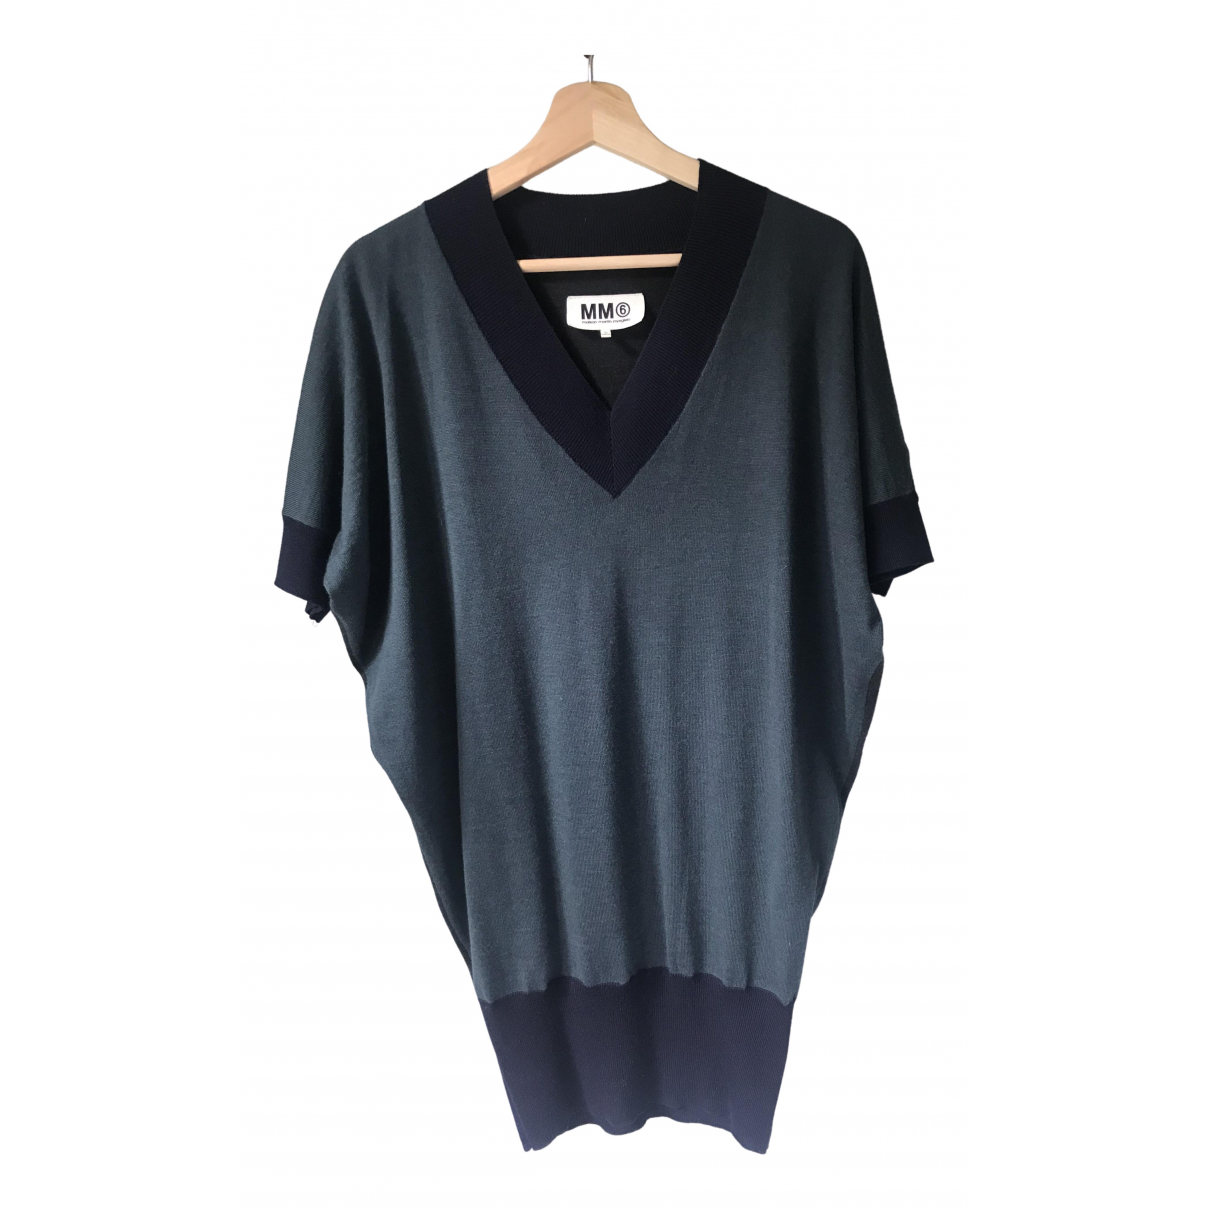 Maison Martin Margiela \N Blue Wool  top for Women M International